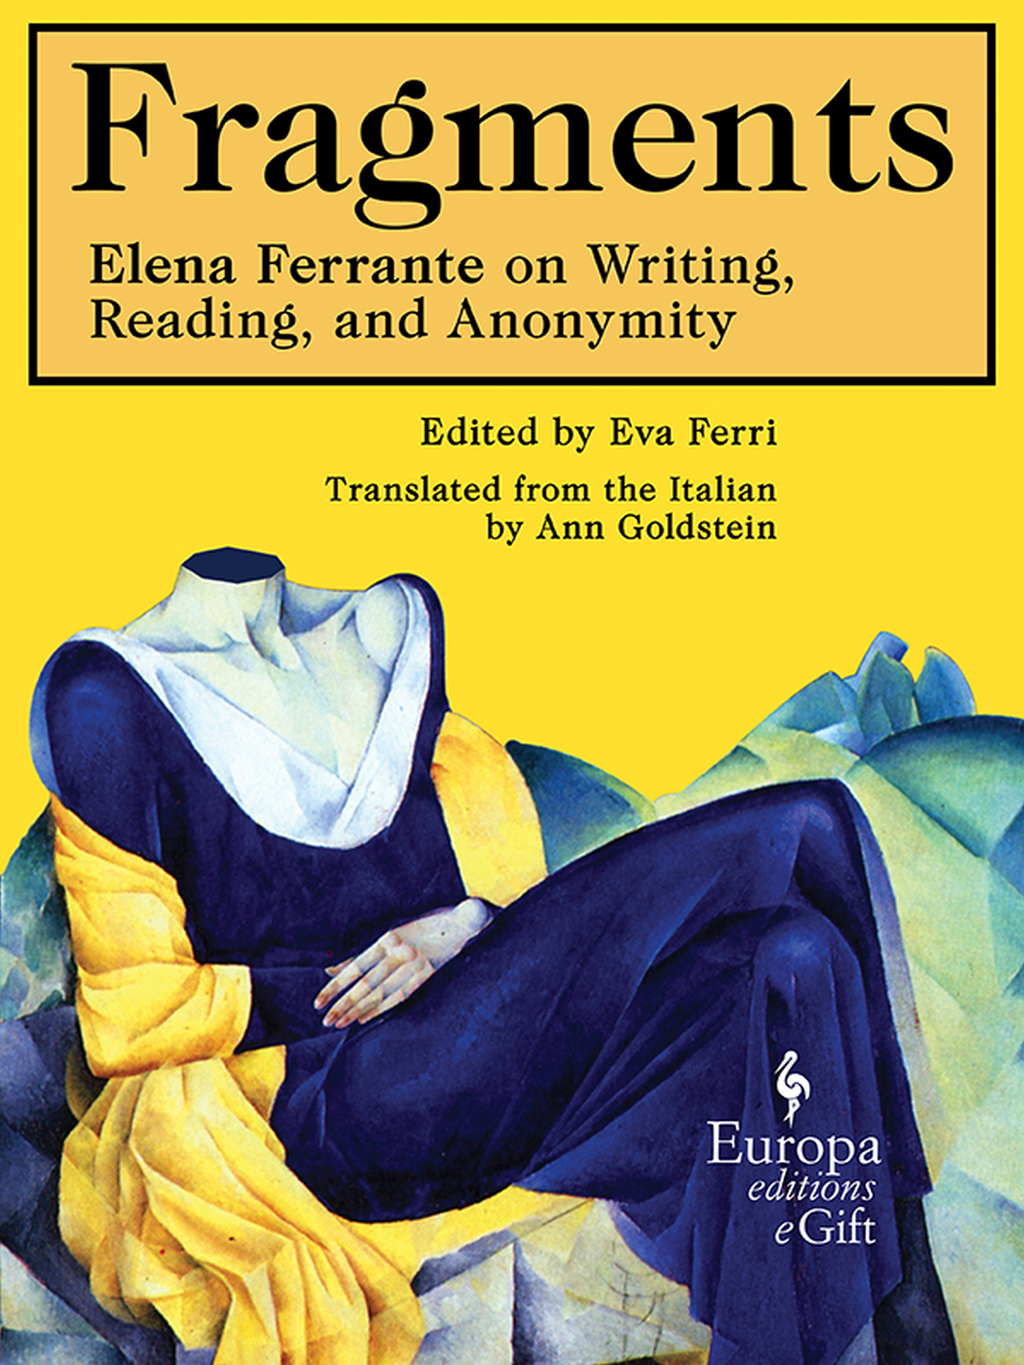 Fragments: Elena Ferrante on Writing, Reading, and Anonymity